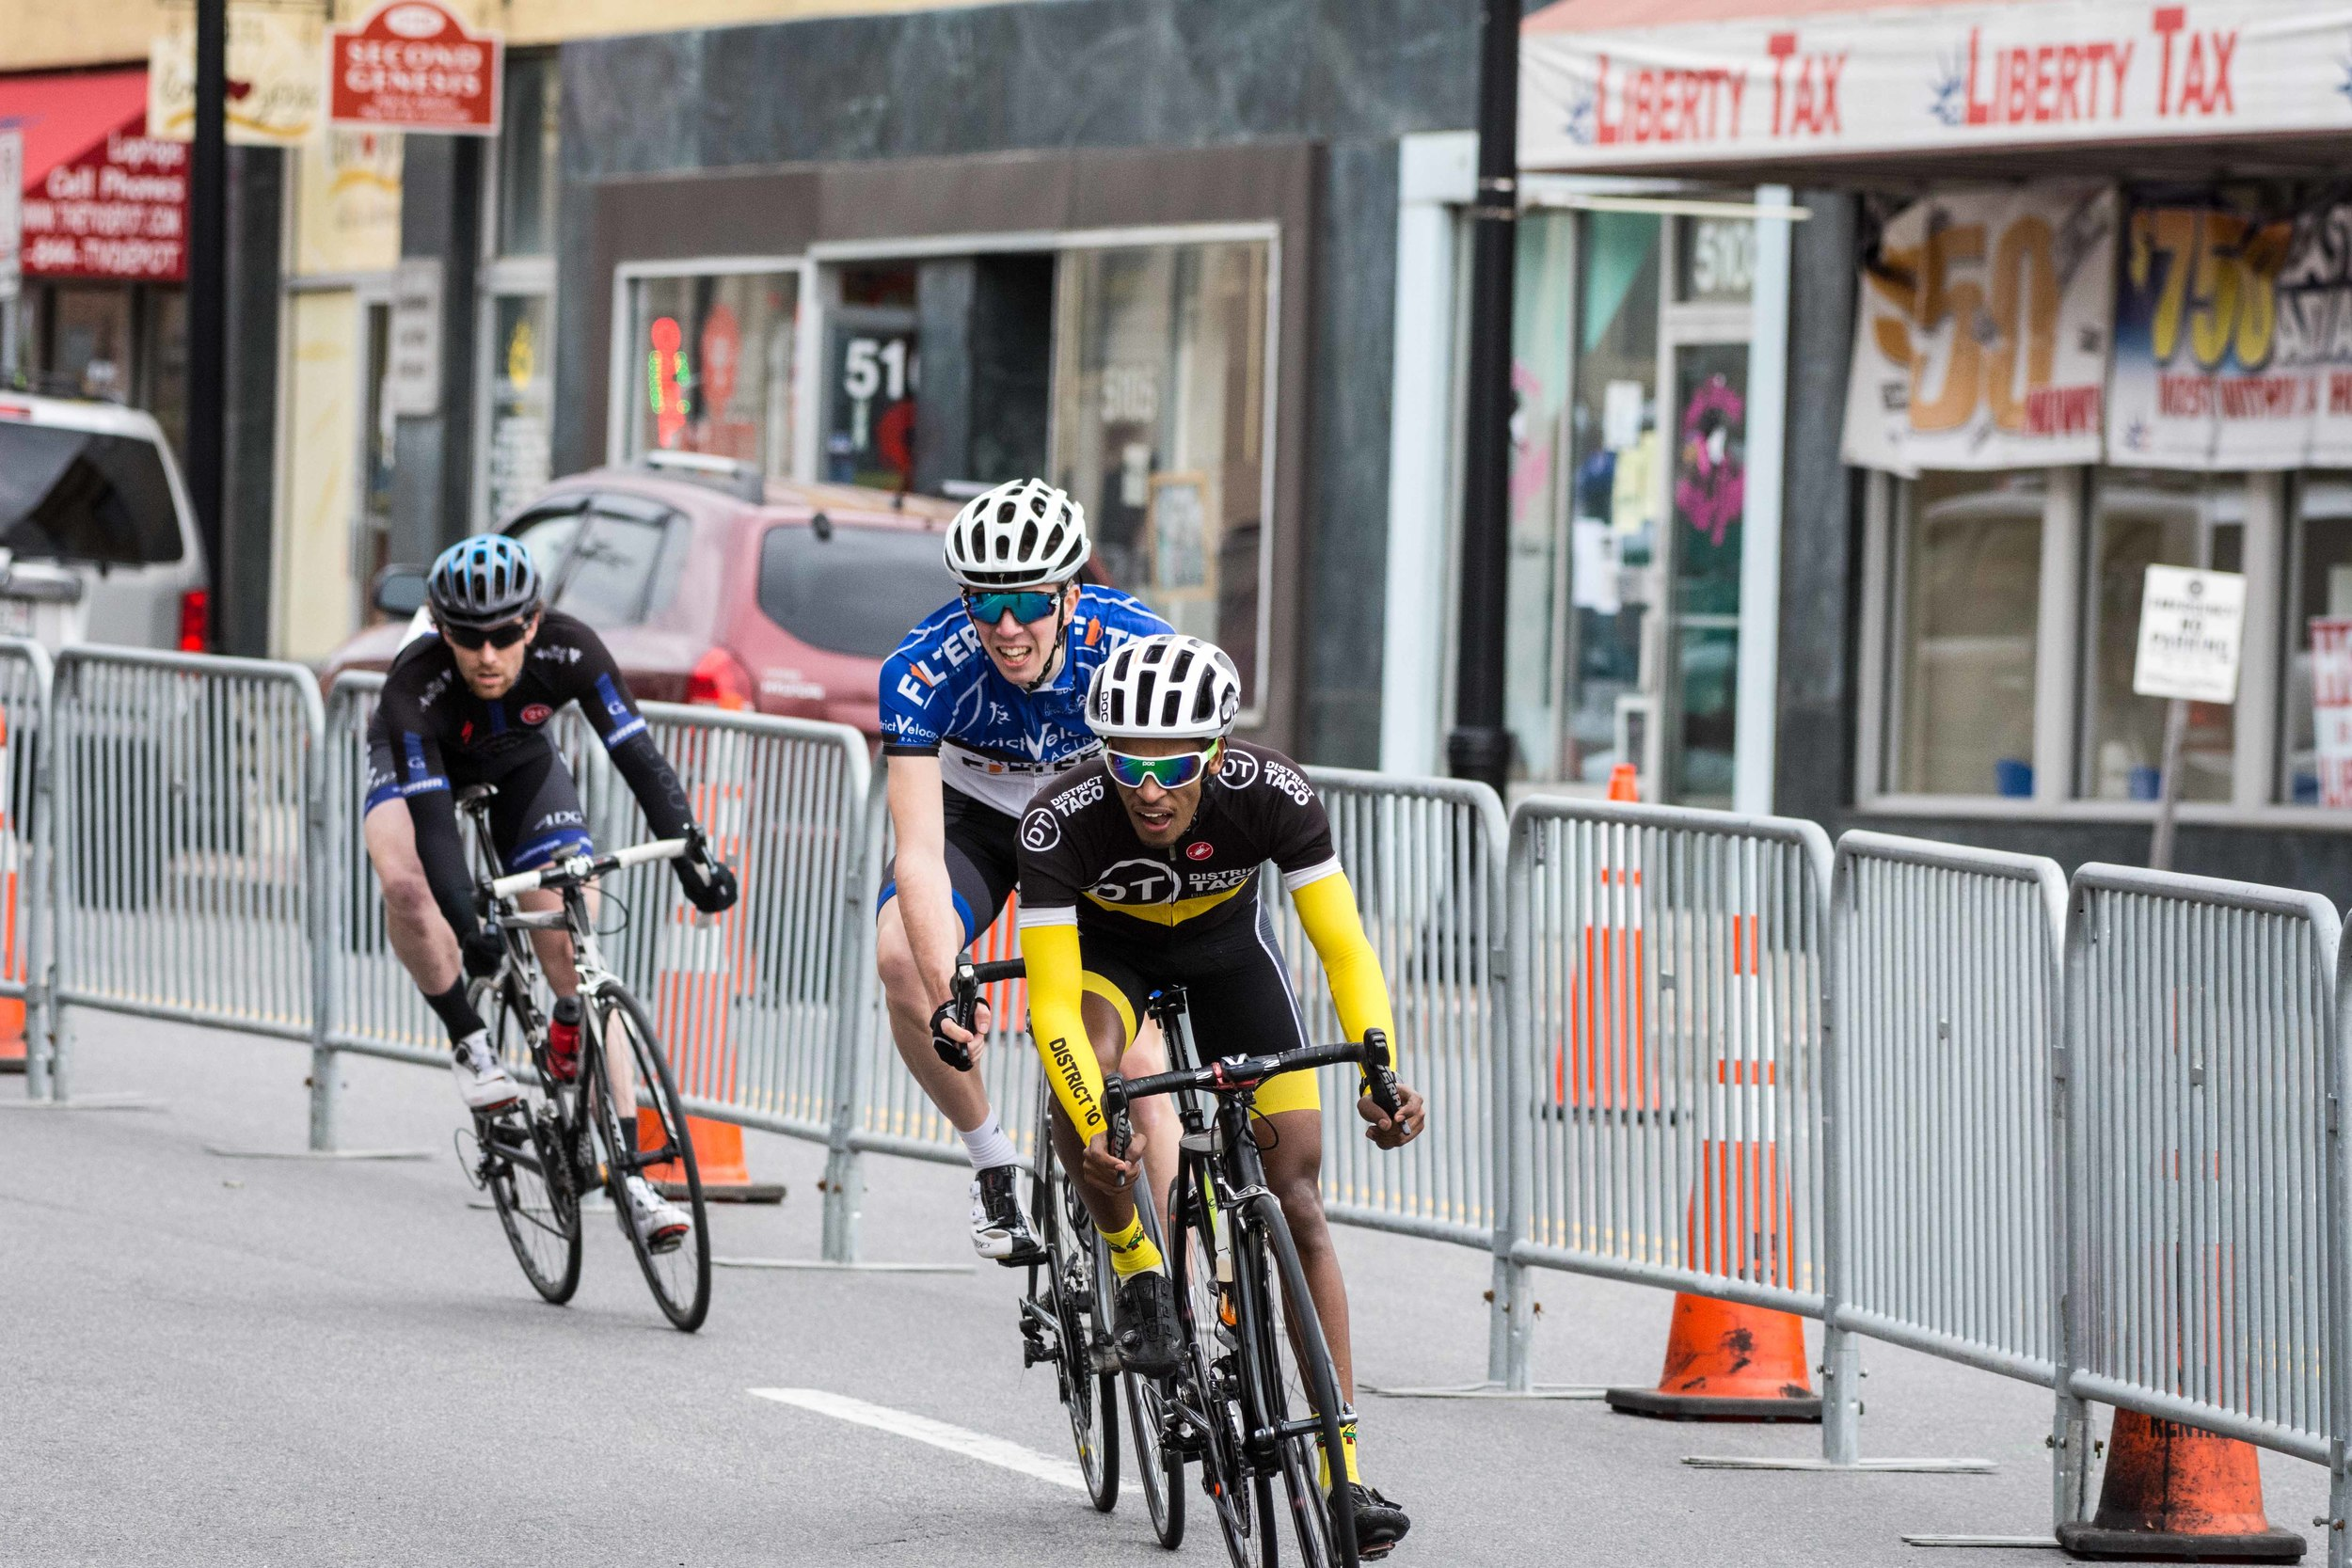 20160312121632 Route One Rampage Criterium 0573.jpg